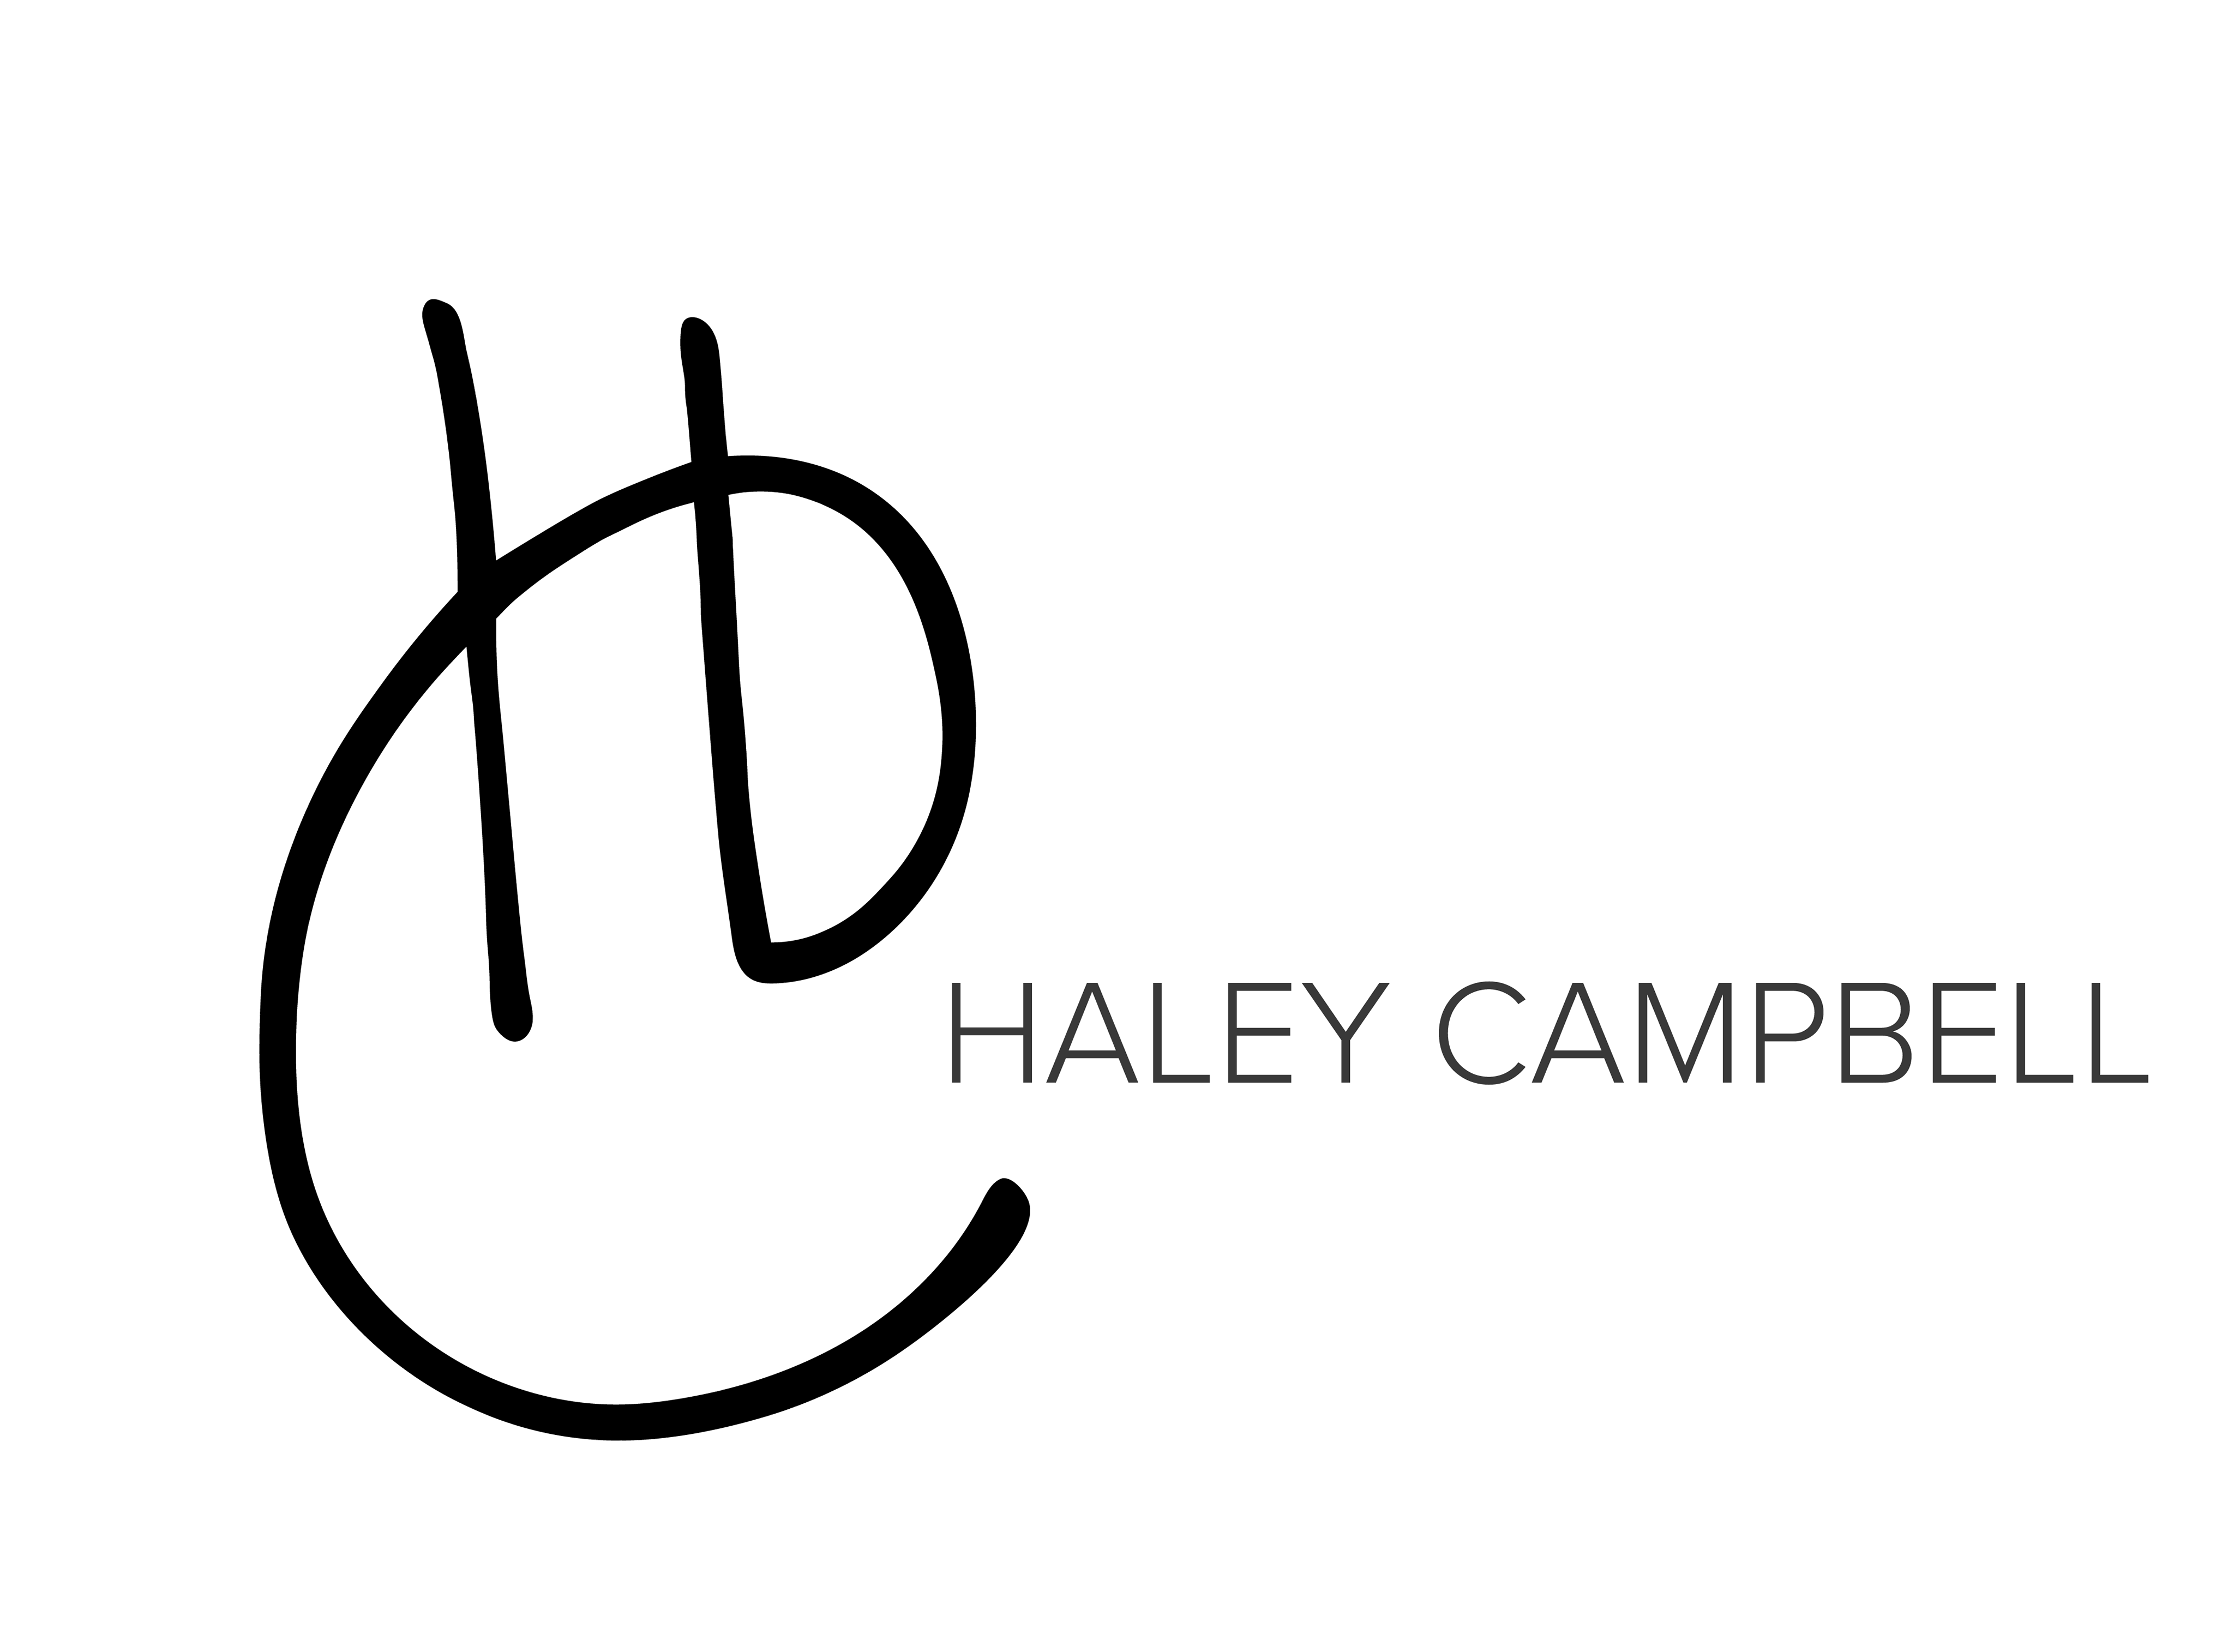 Haley Campbell